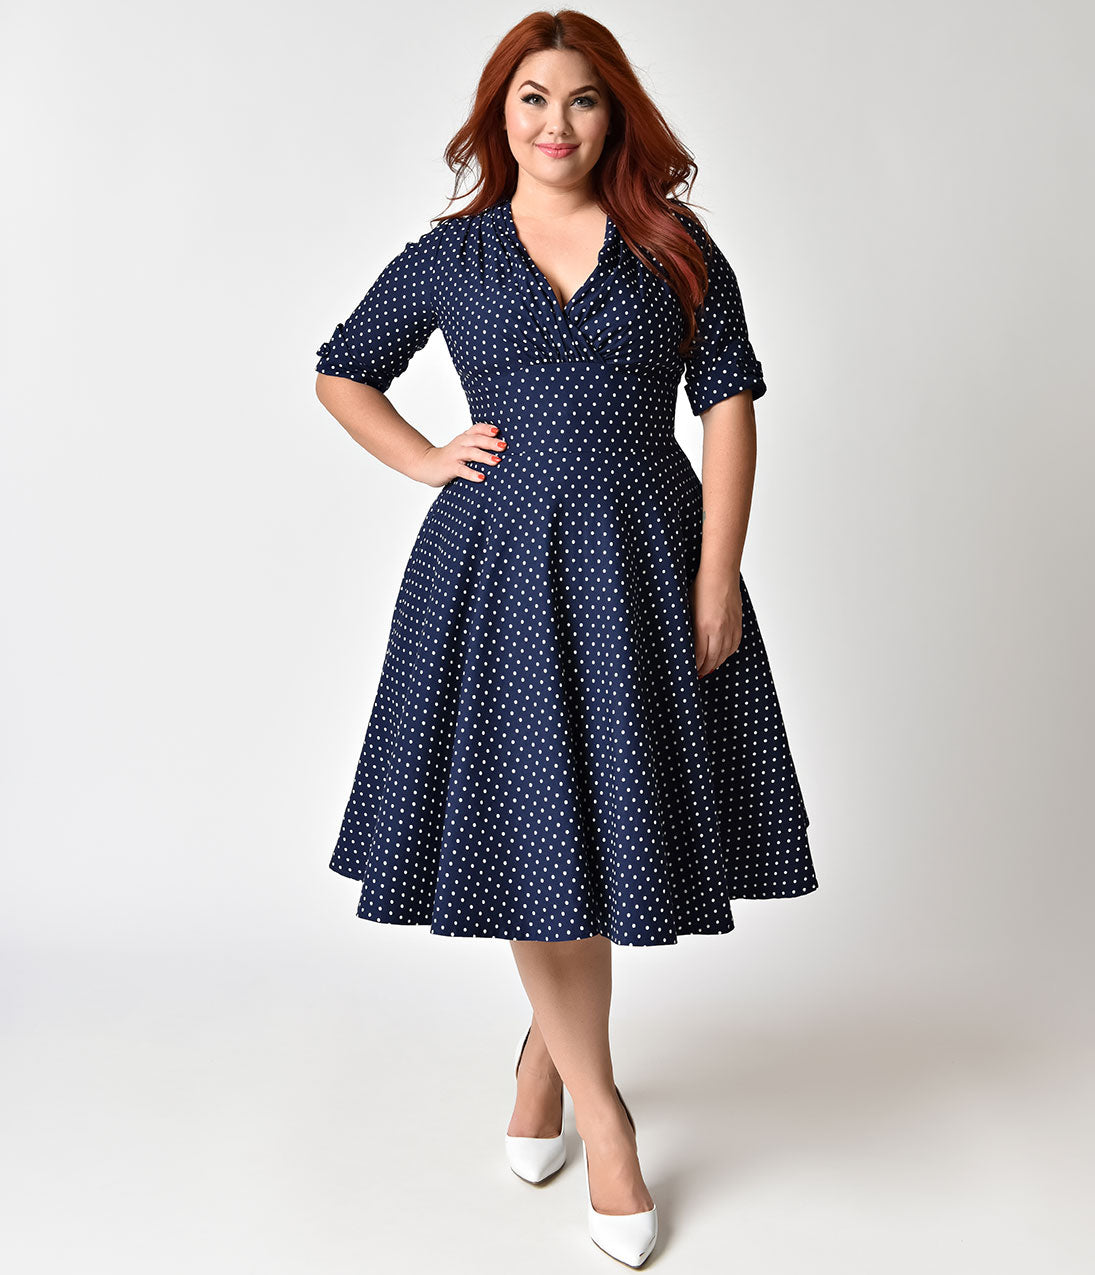 1950s Swing Dresses | 50s Swing Dress 1950S Navy  White Dot Delores Swing Dress With Sleeves $92.00 AT vintagedancer.com